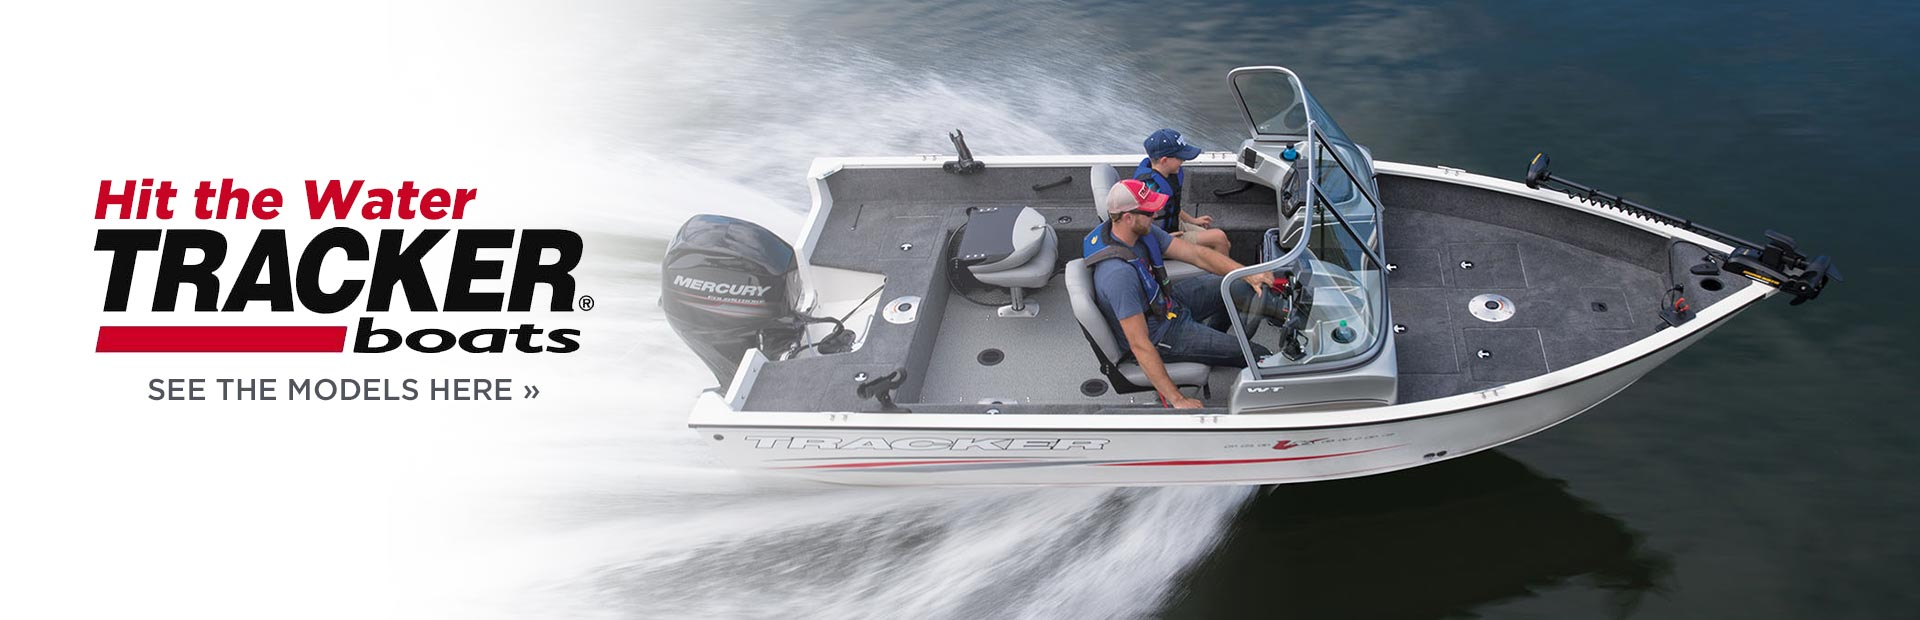 Tracker Boats: Click here to view the models.